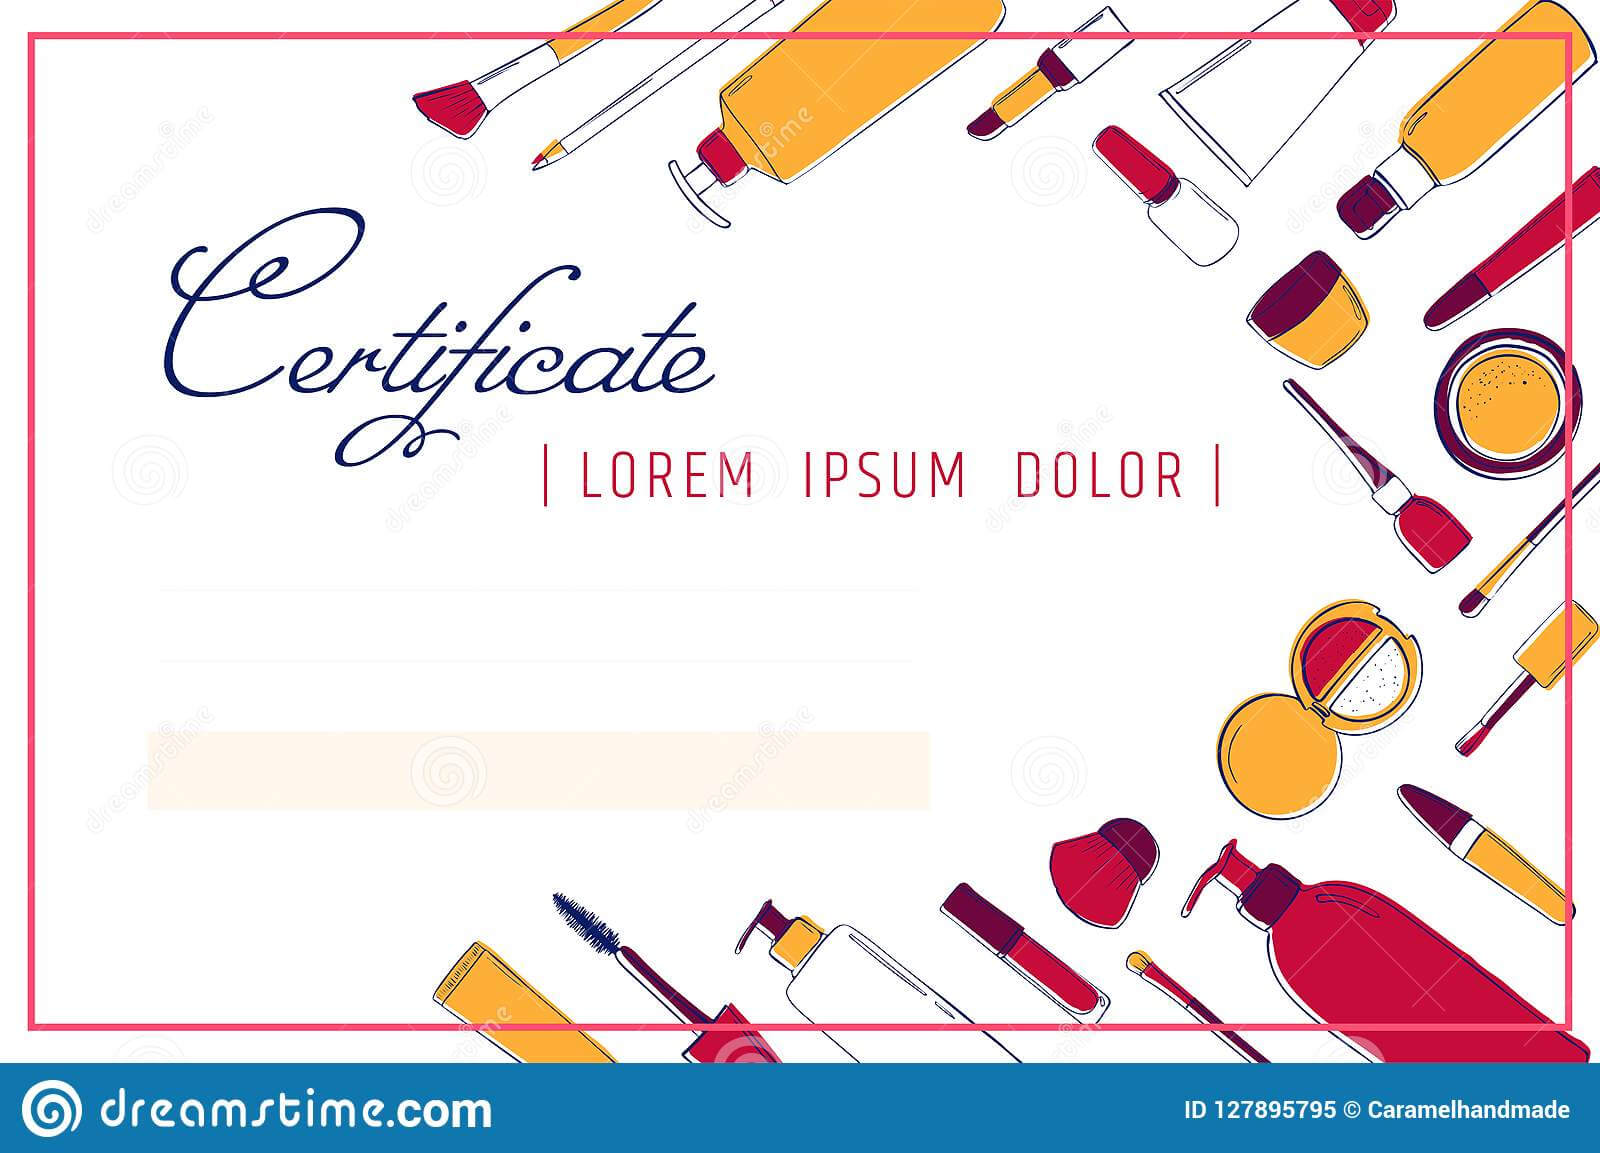 Makeup Certificate Template. Beauty School Or Refresher Pertaining To Beautiful Certificate Templates